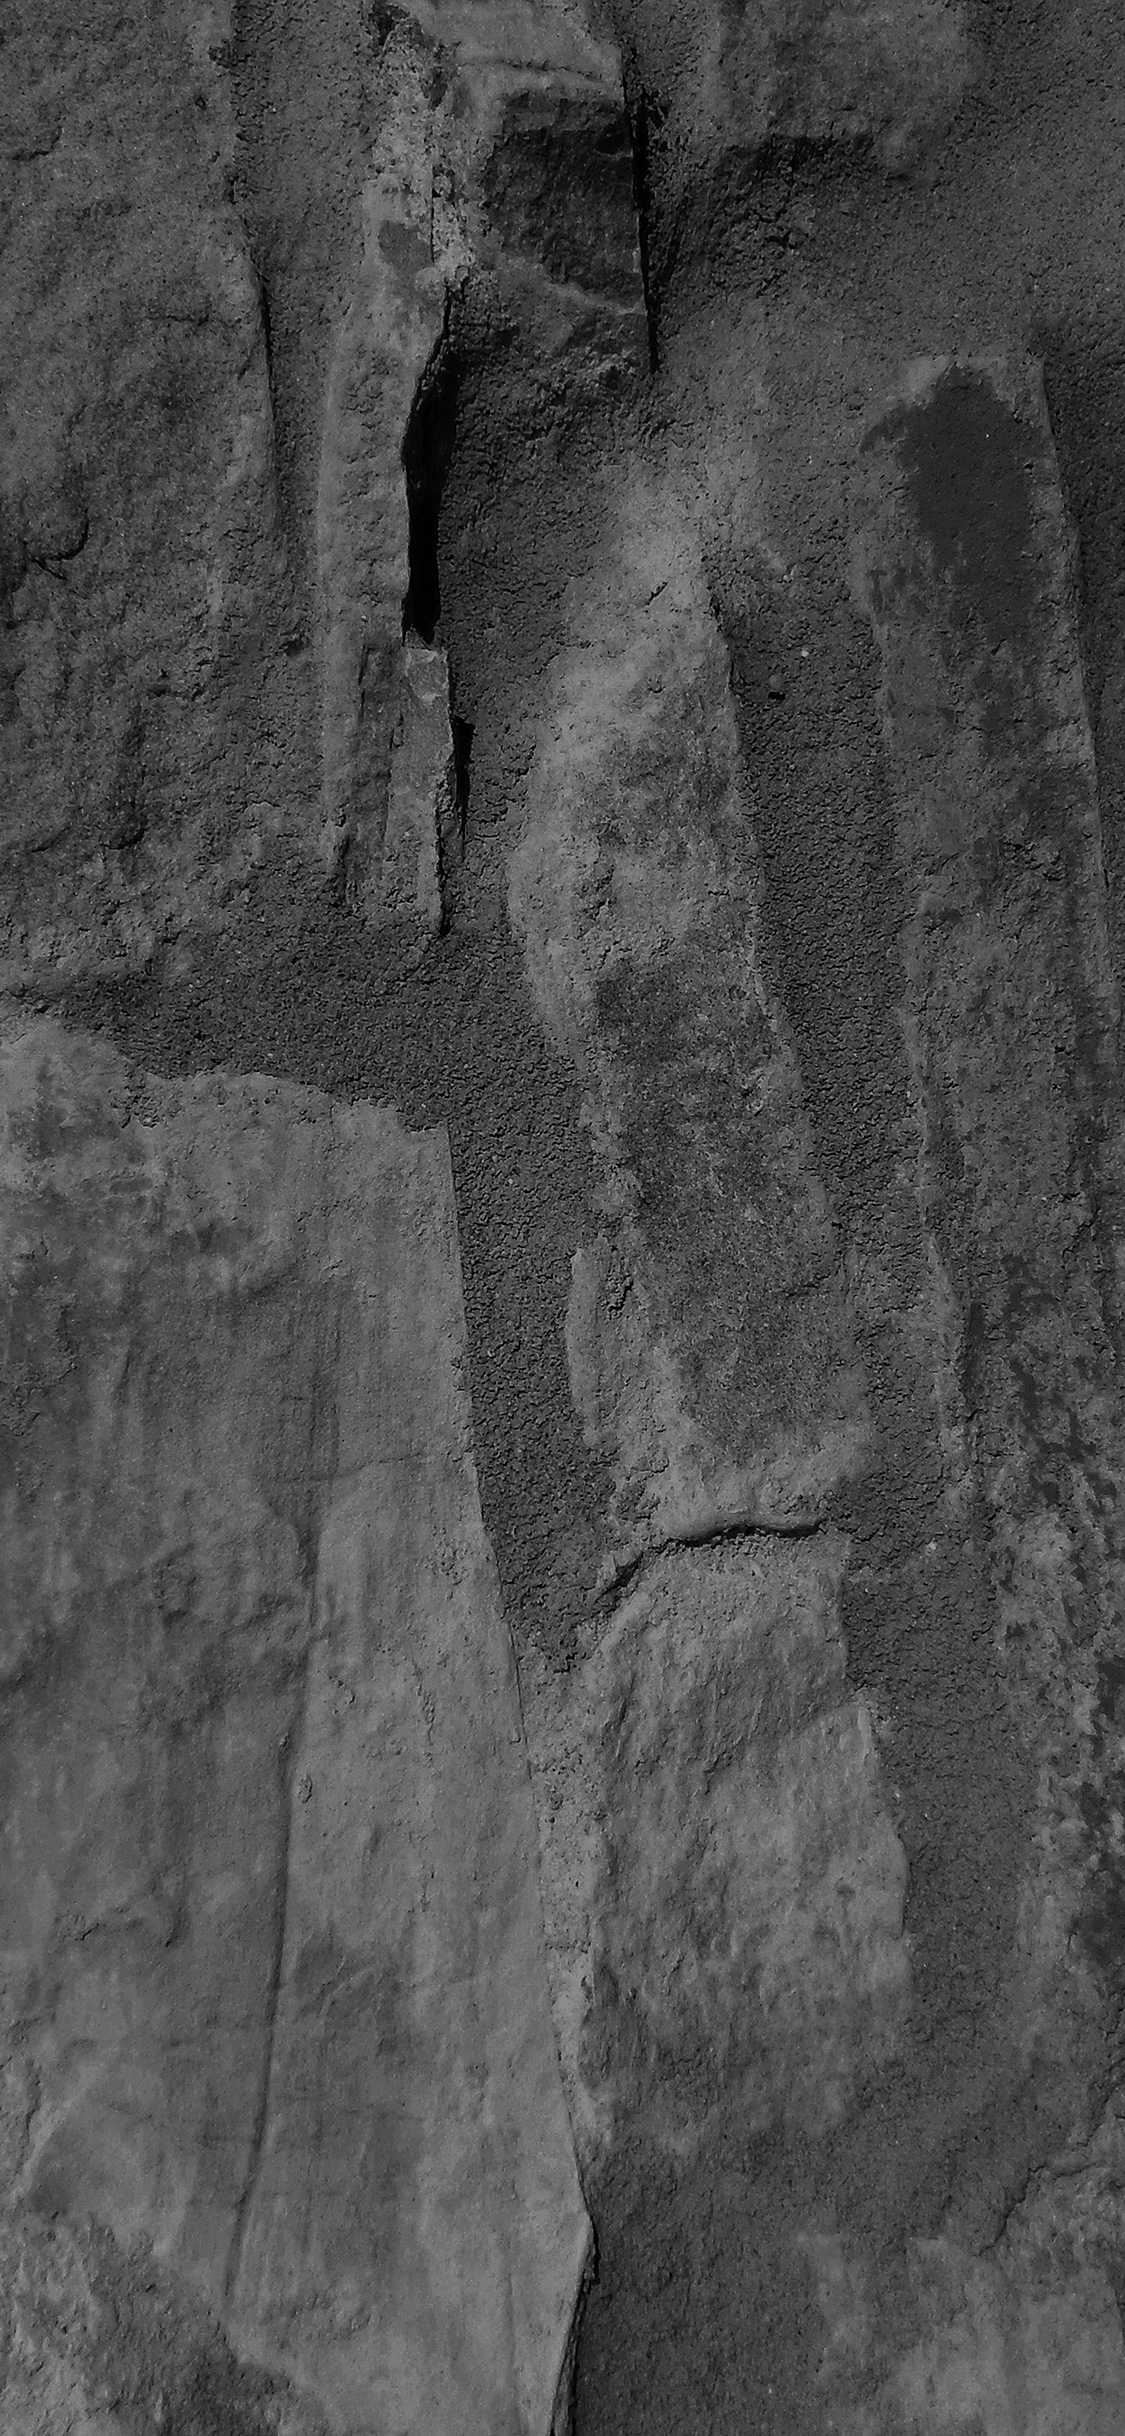 iPhonexpapers.com-Apple-iPhone-wallpaper-vj42-brick-wall-texture-pattern-dark-bw